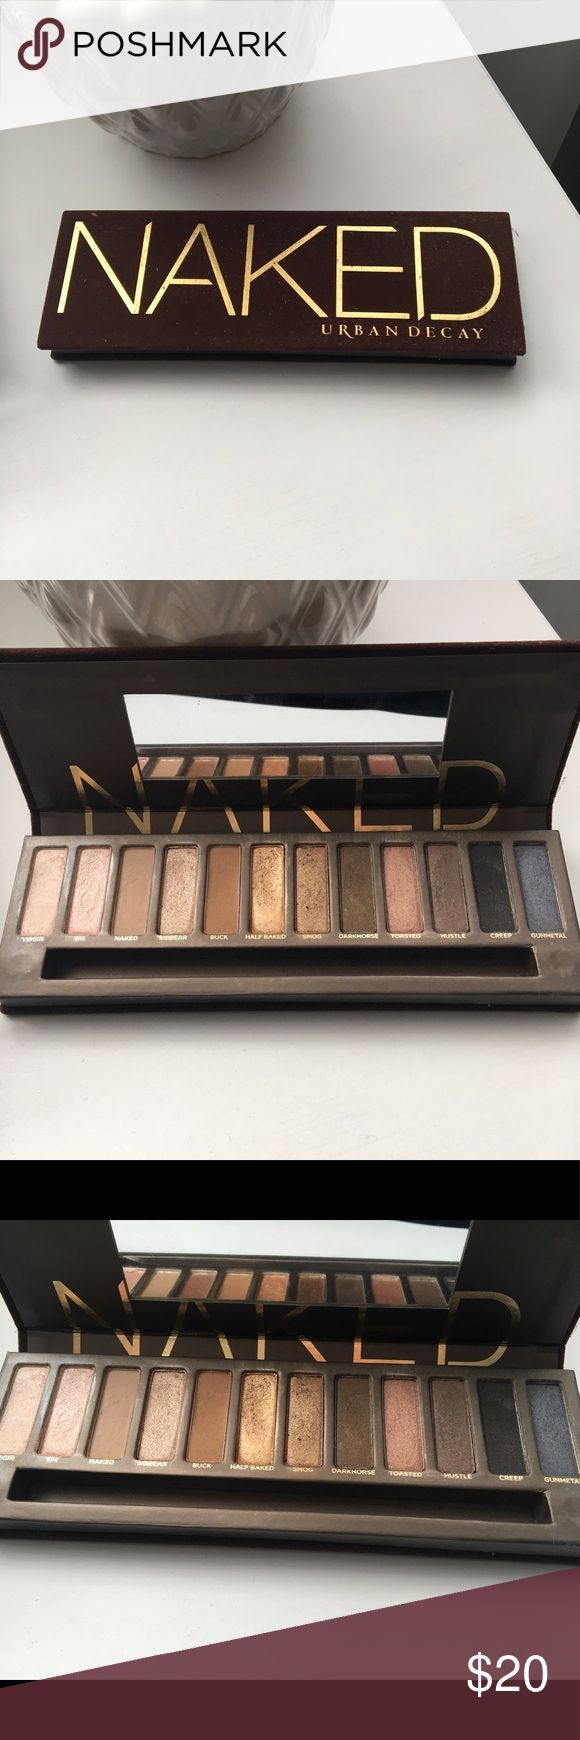 Urban Decay Naked Palette Barely used Naked Palette -does not include brush, clean mirror, all eyeshadows intact Urban Decay Makeup Eyeshadow